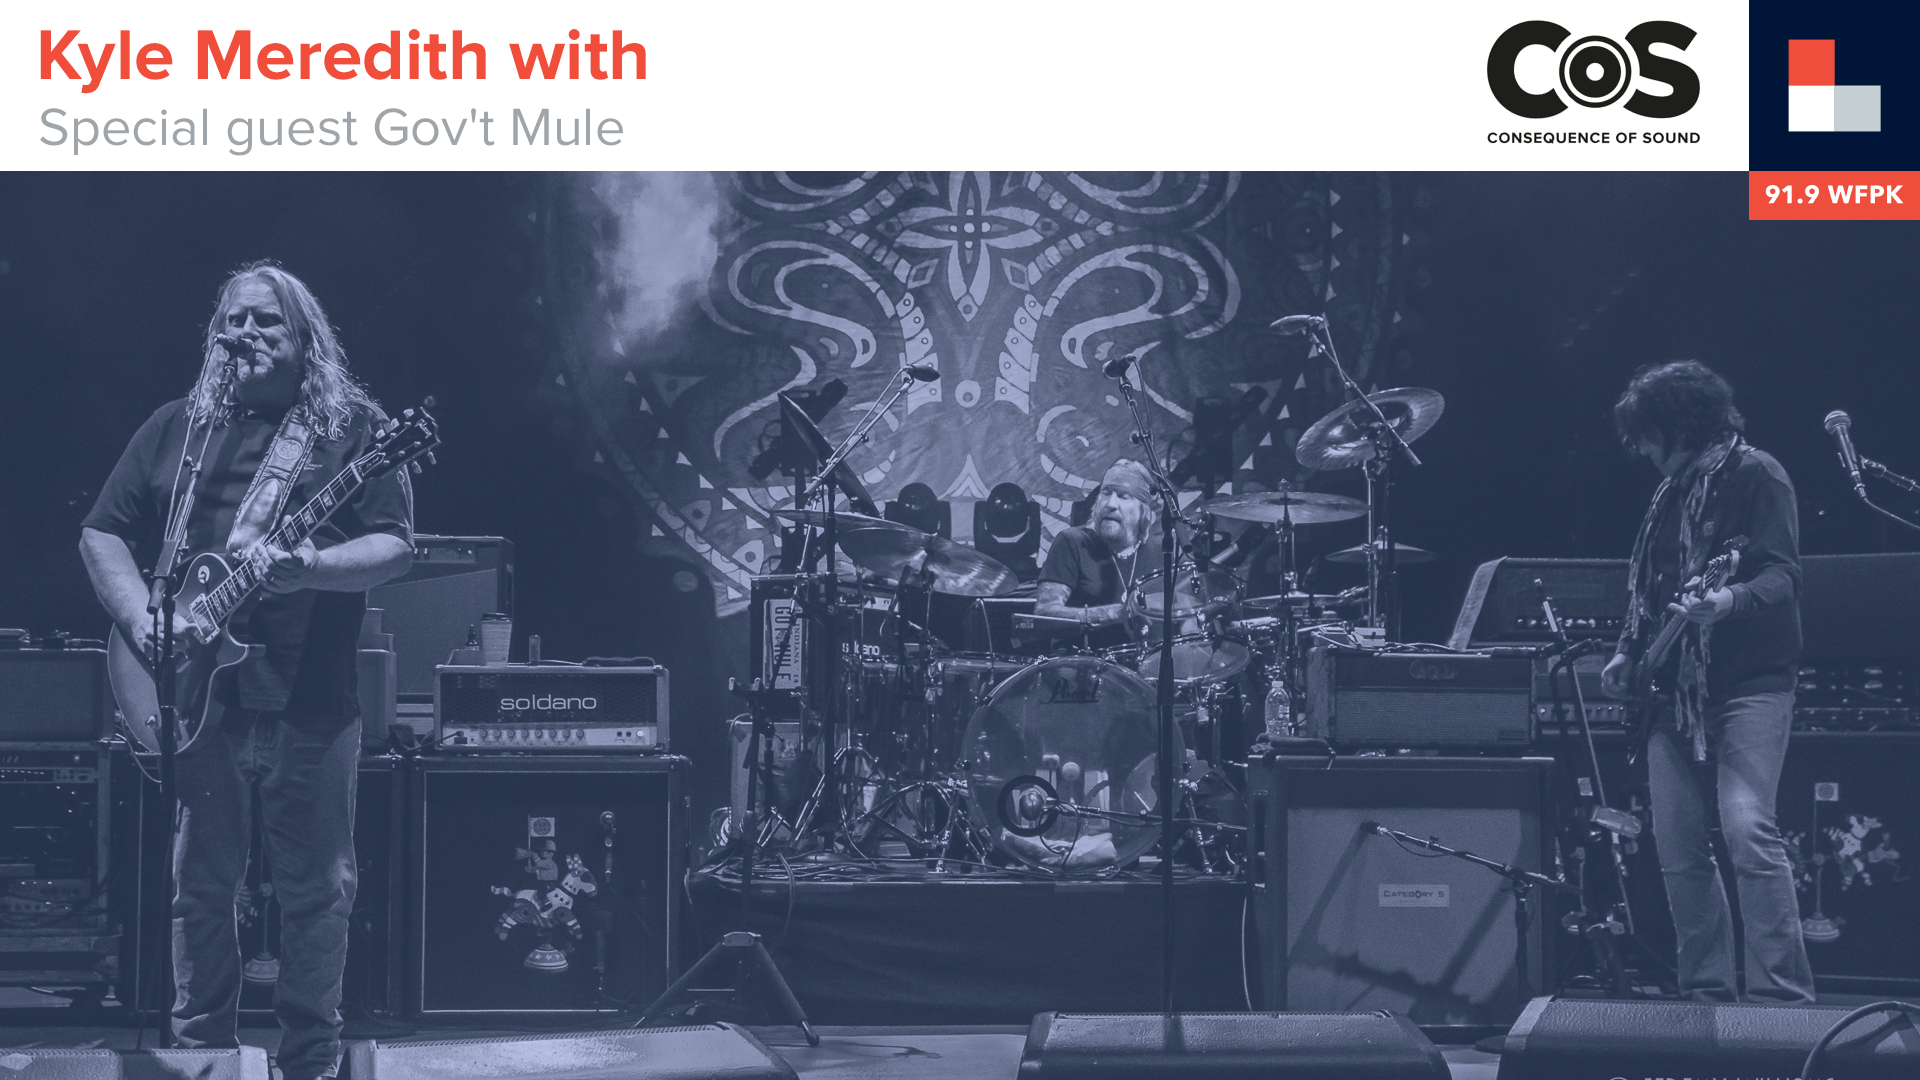 Warren Haynes on the Live Future of the Allman Brothers and What's Next for Gov't Mule